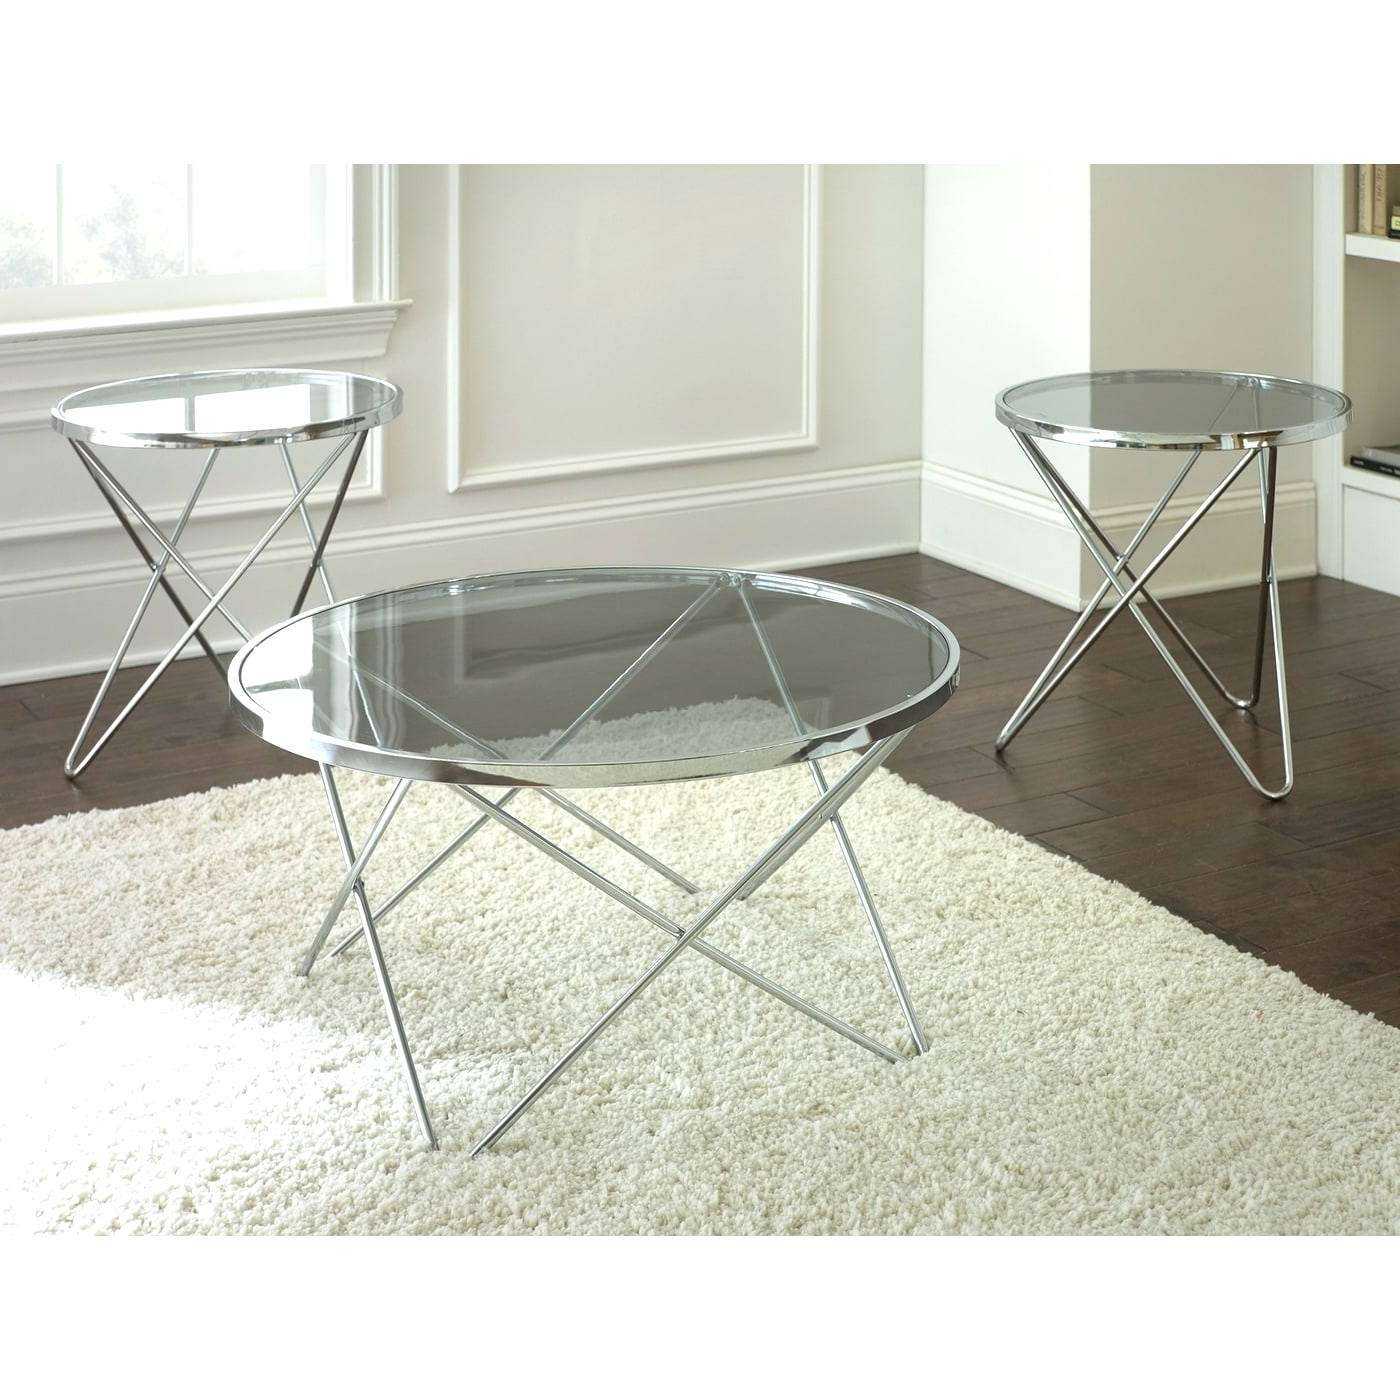 Steve Silver Coffee Table – Capsuling For Most Up To Date Glass And Silver Coffee Tables (View 15 of 20)